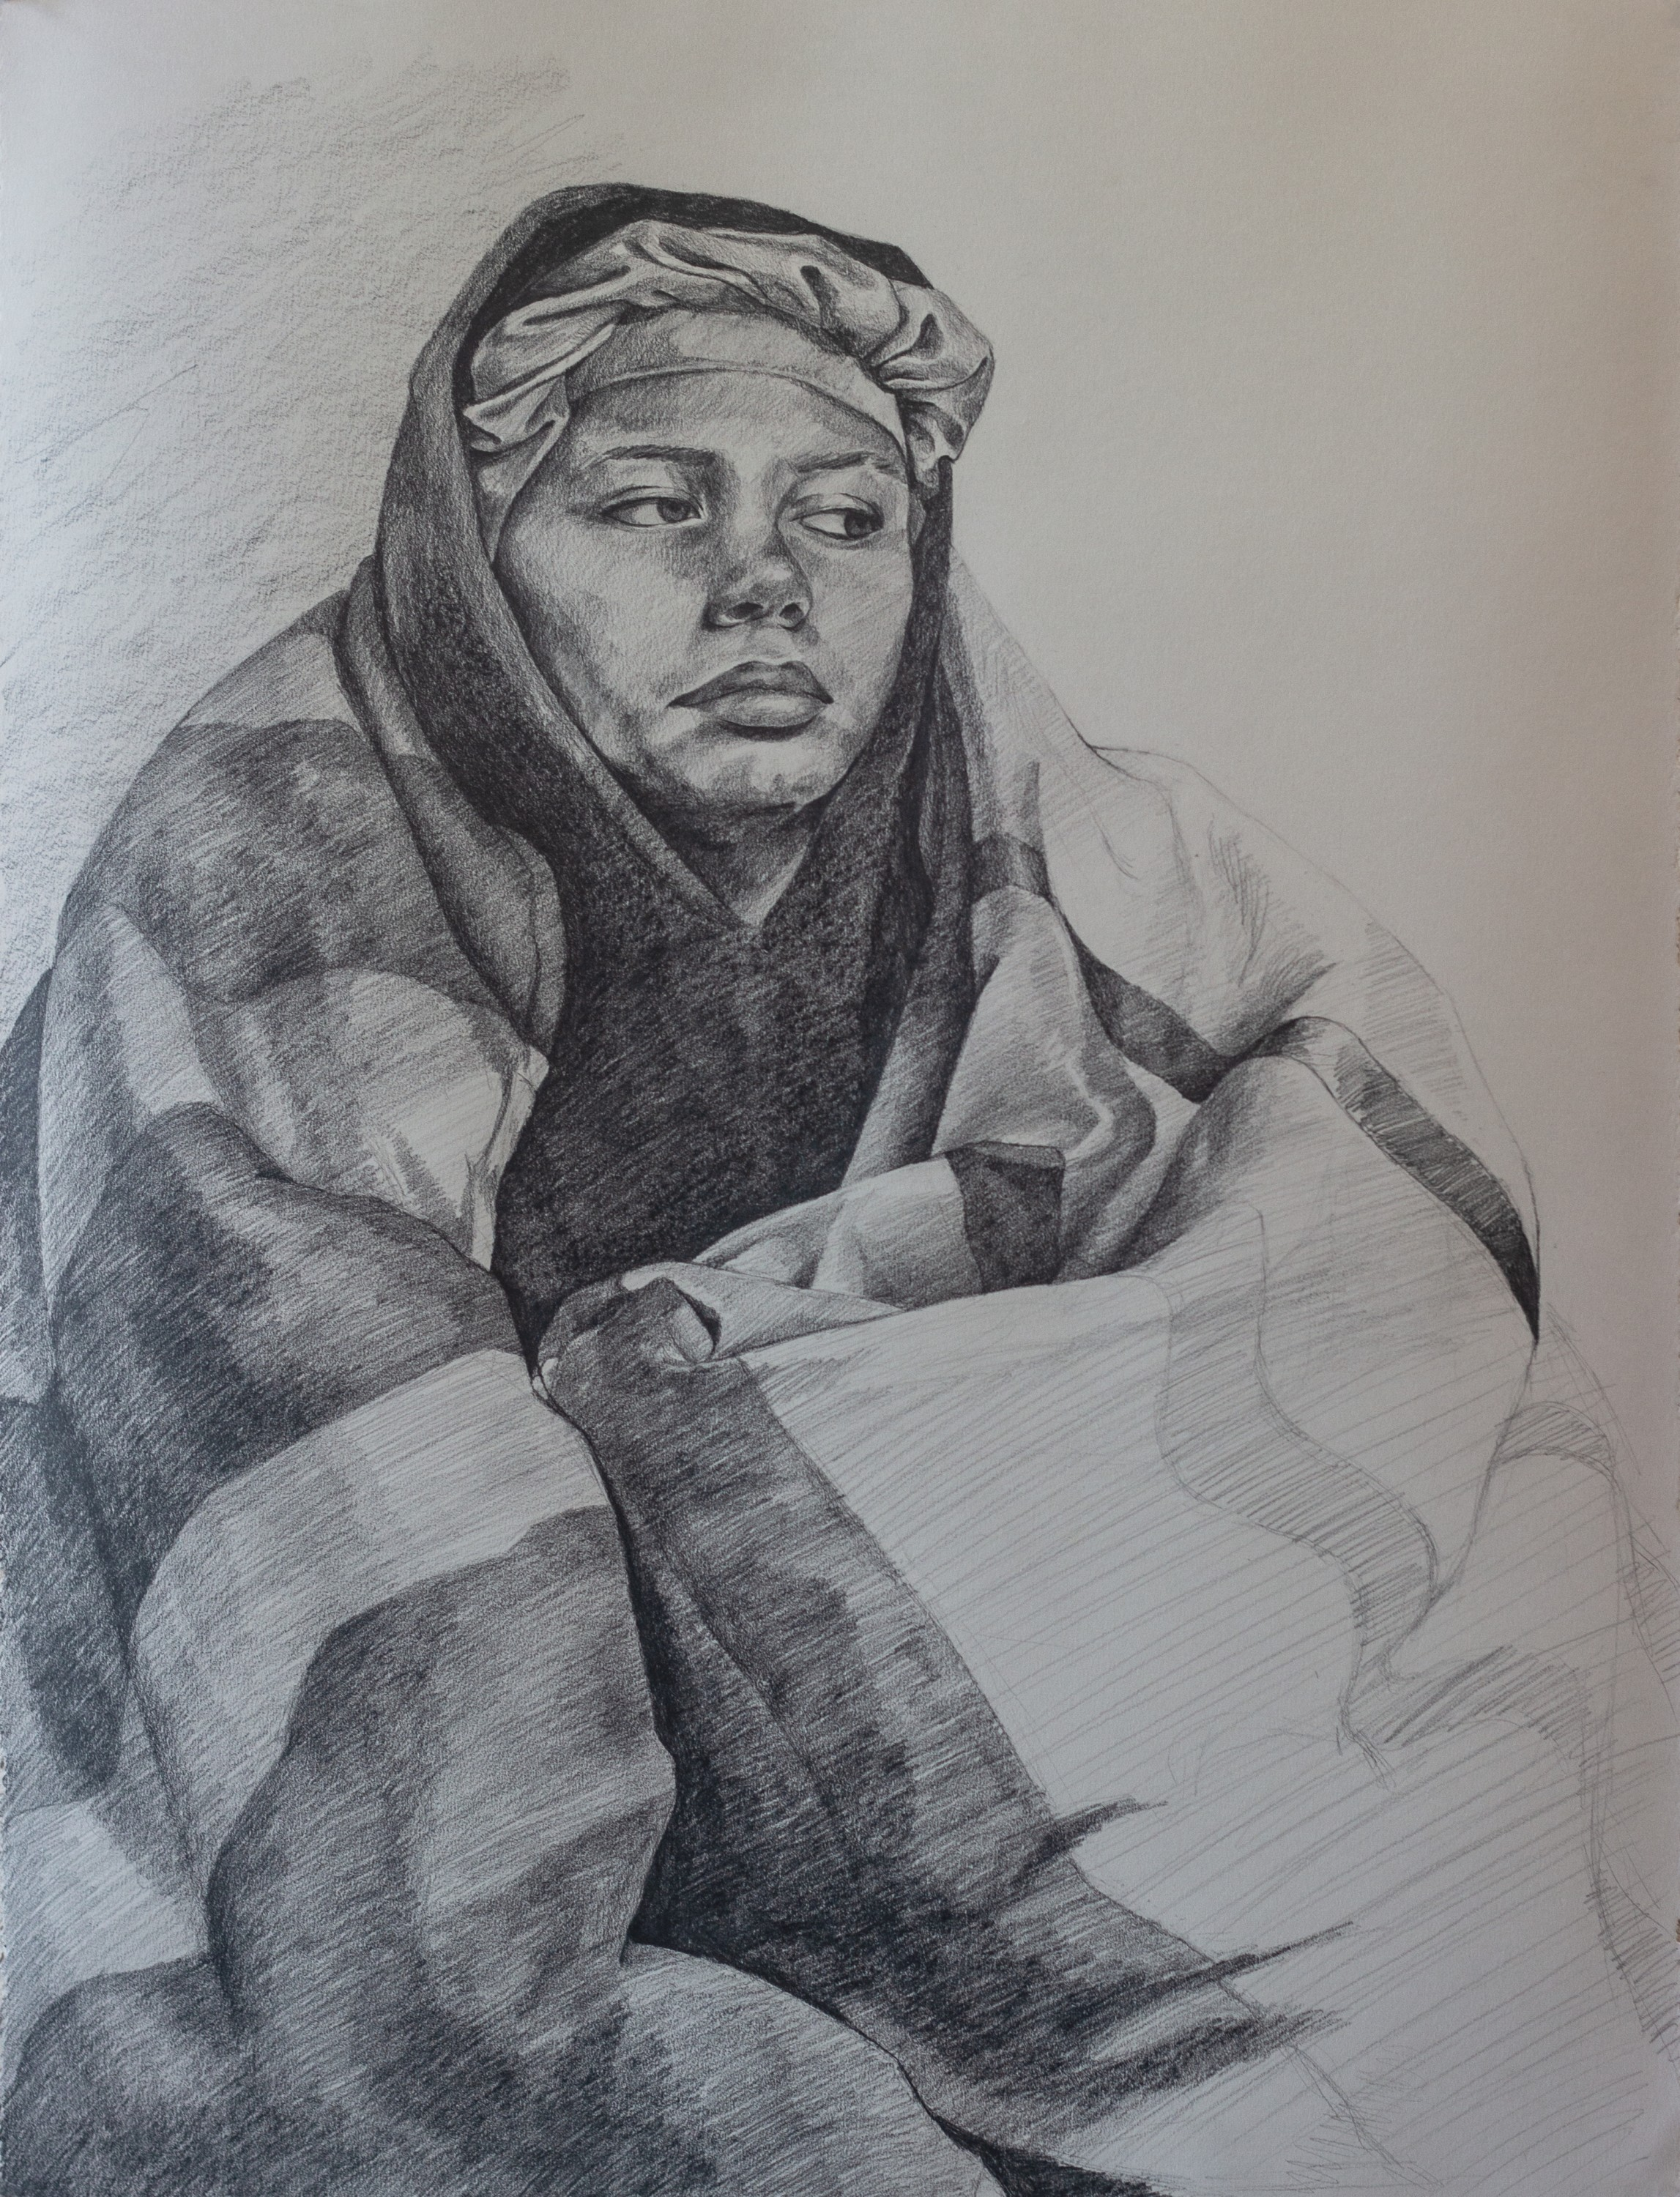 A graphite drawing of a figure wrapped in a striped blanket.